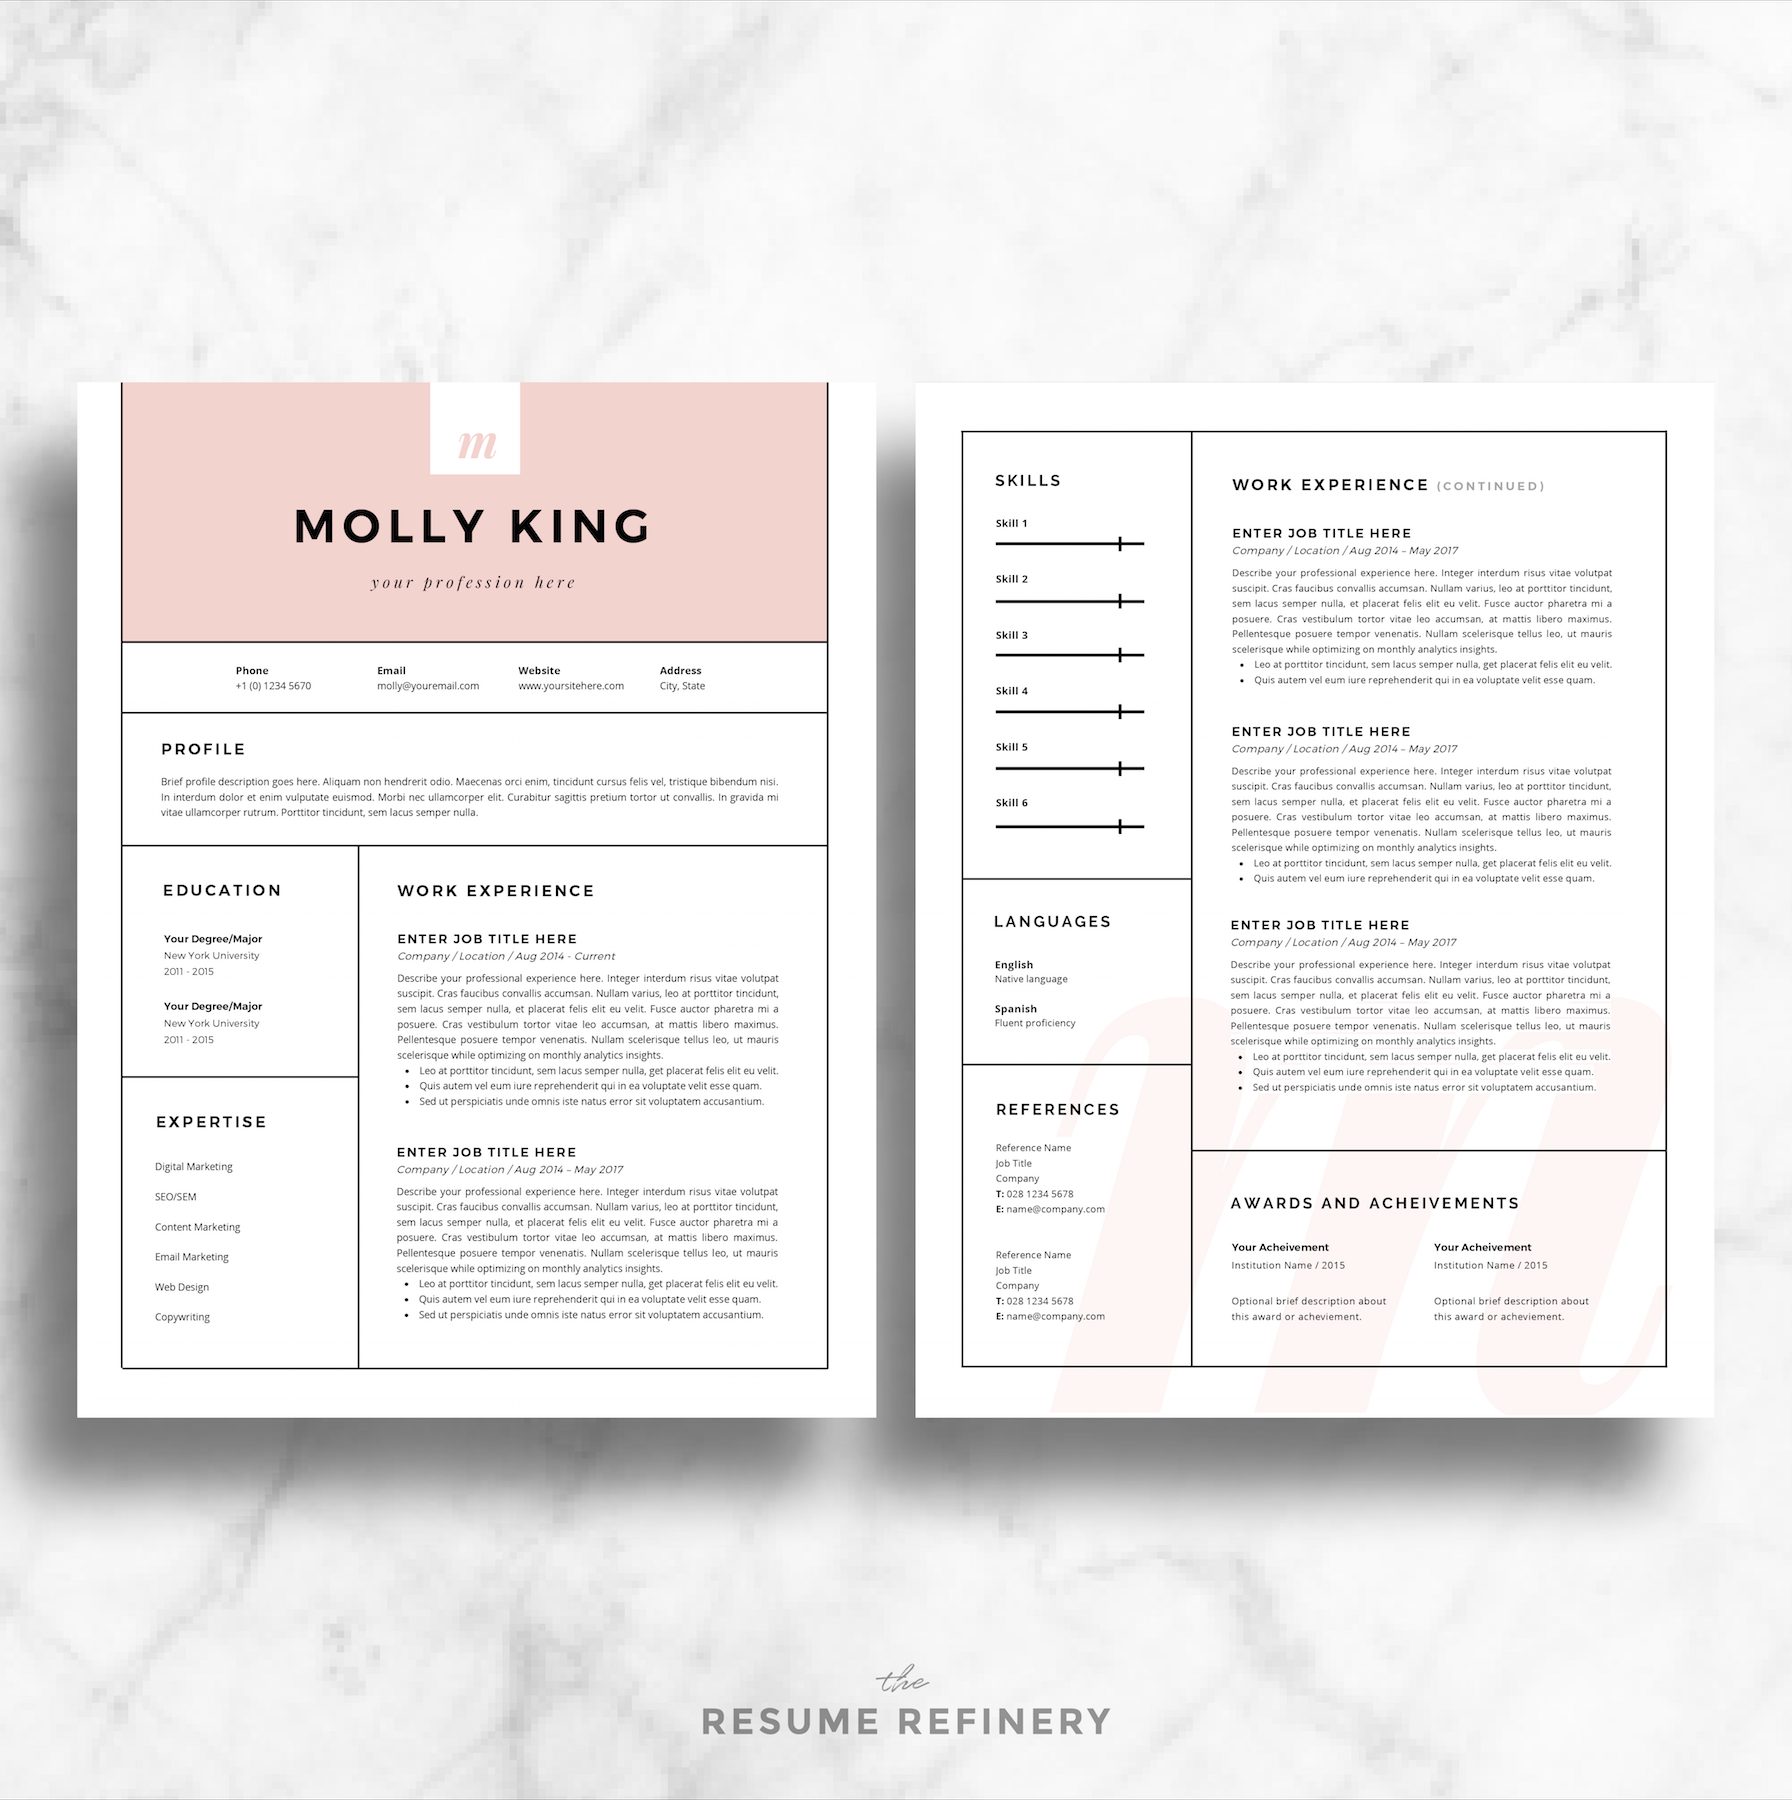 Modern 2 Page Resume Cover Letter Template For Word Bonus Resume Writing Guide Creative And Professional Resume Design Resume Cover Letter Template Cover Letter For Resume Resume Design